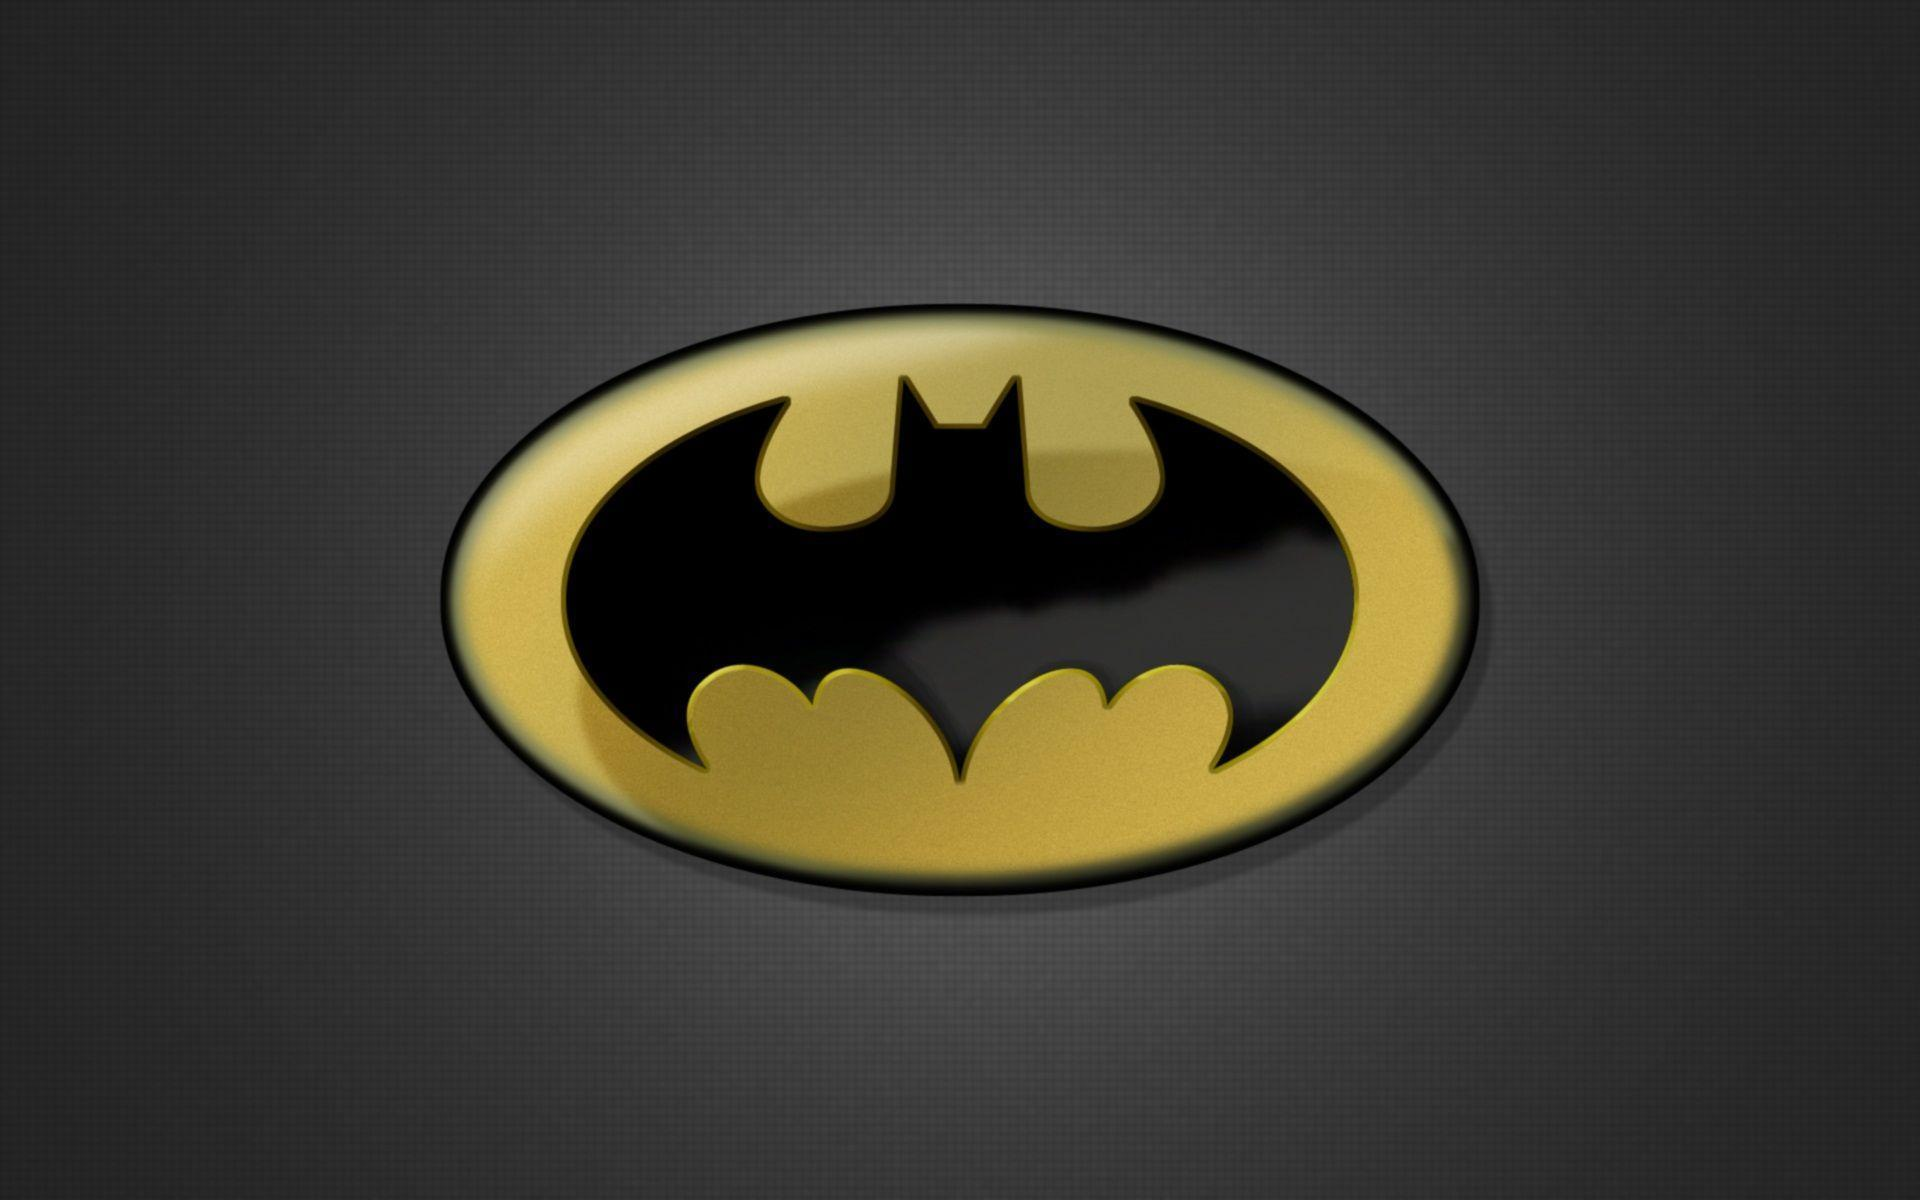 Wallpapers For > Batman Logo Wallpapers For Mobile